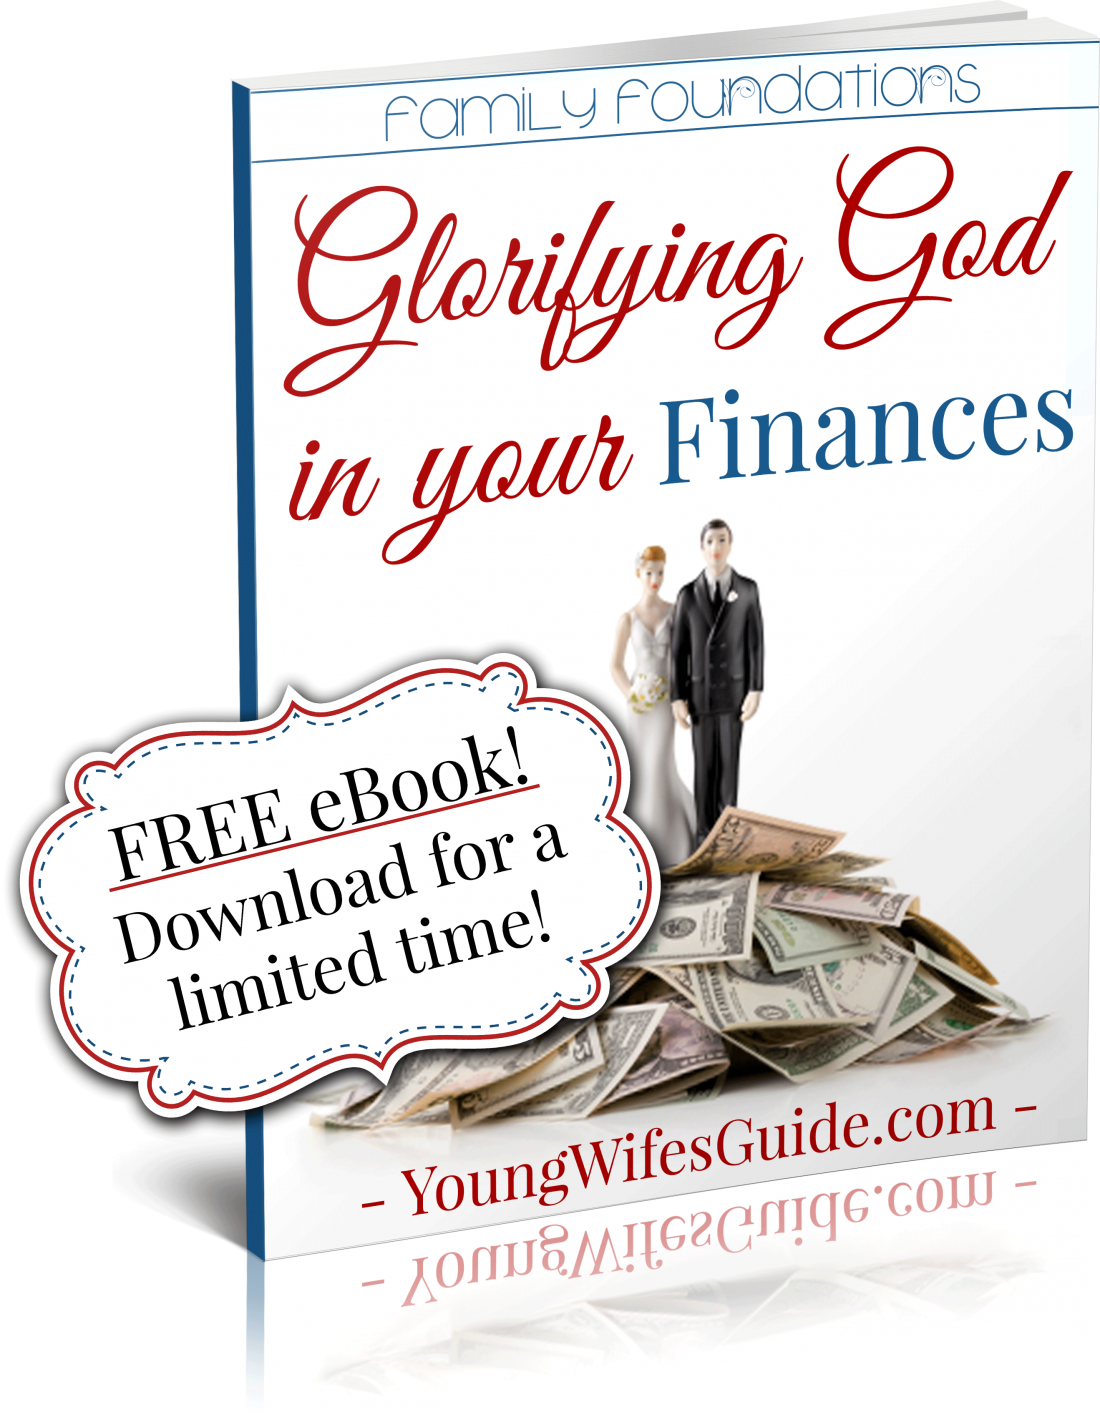 Learn how to come together with your spouse and glorify God with your finances! FREE for a limited time!